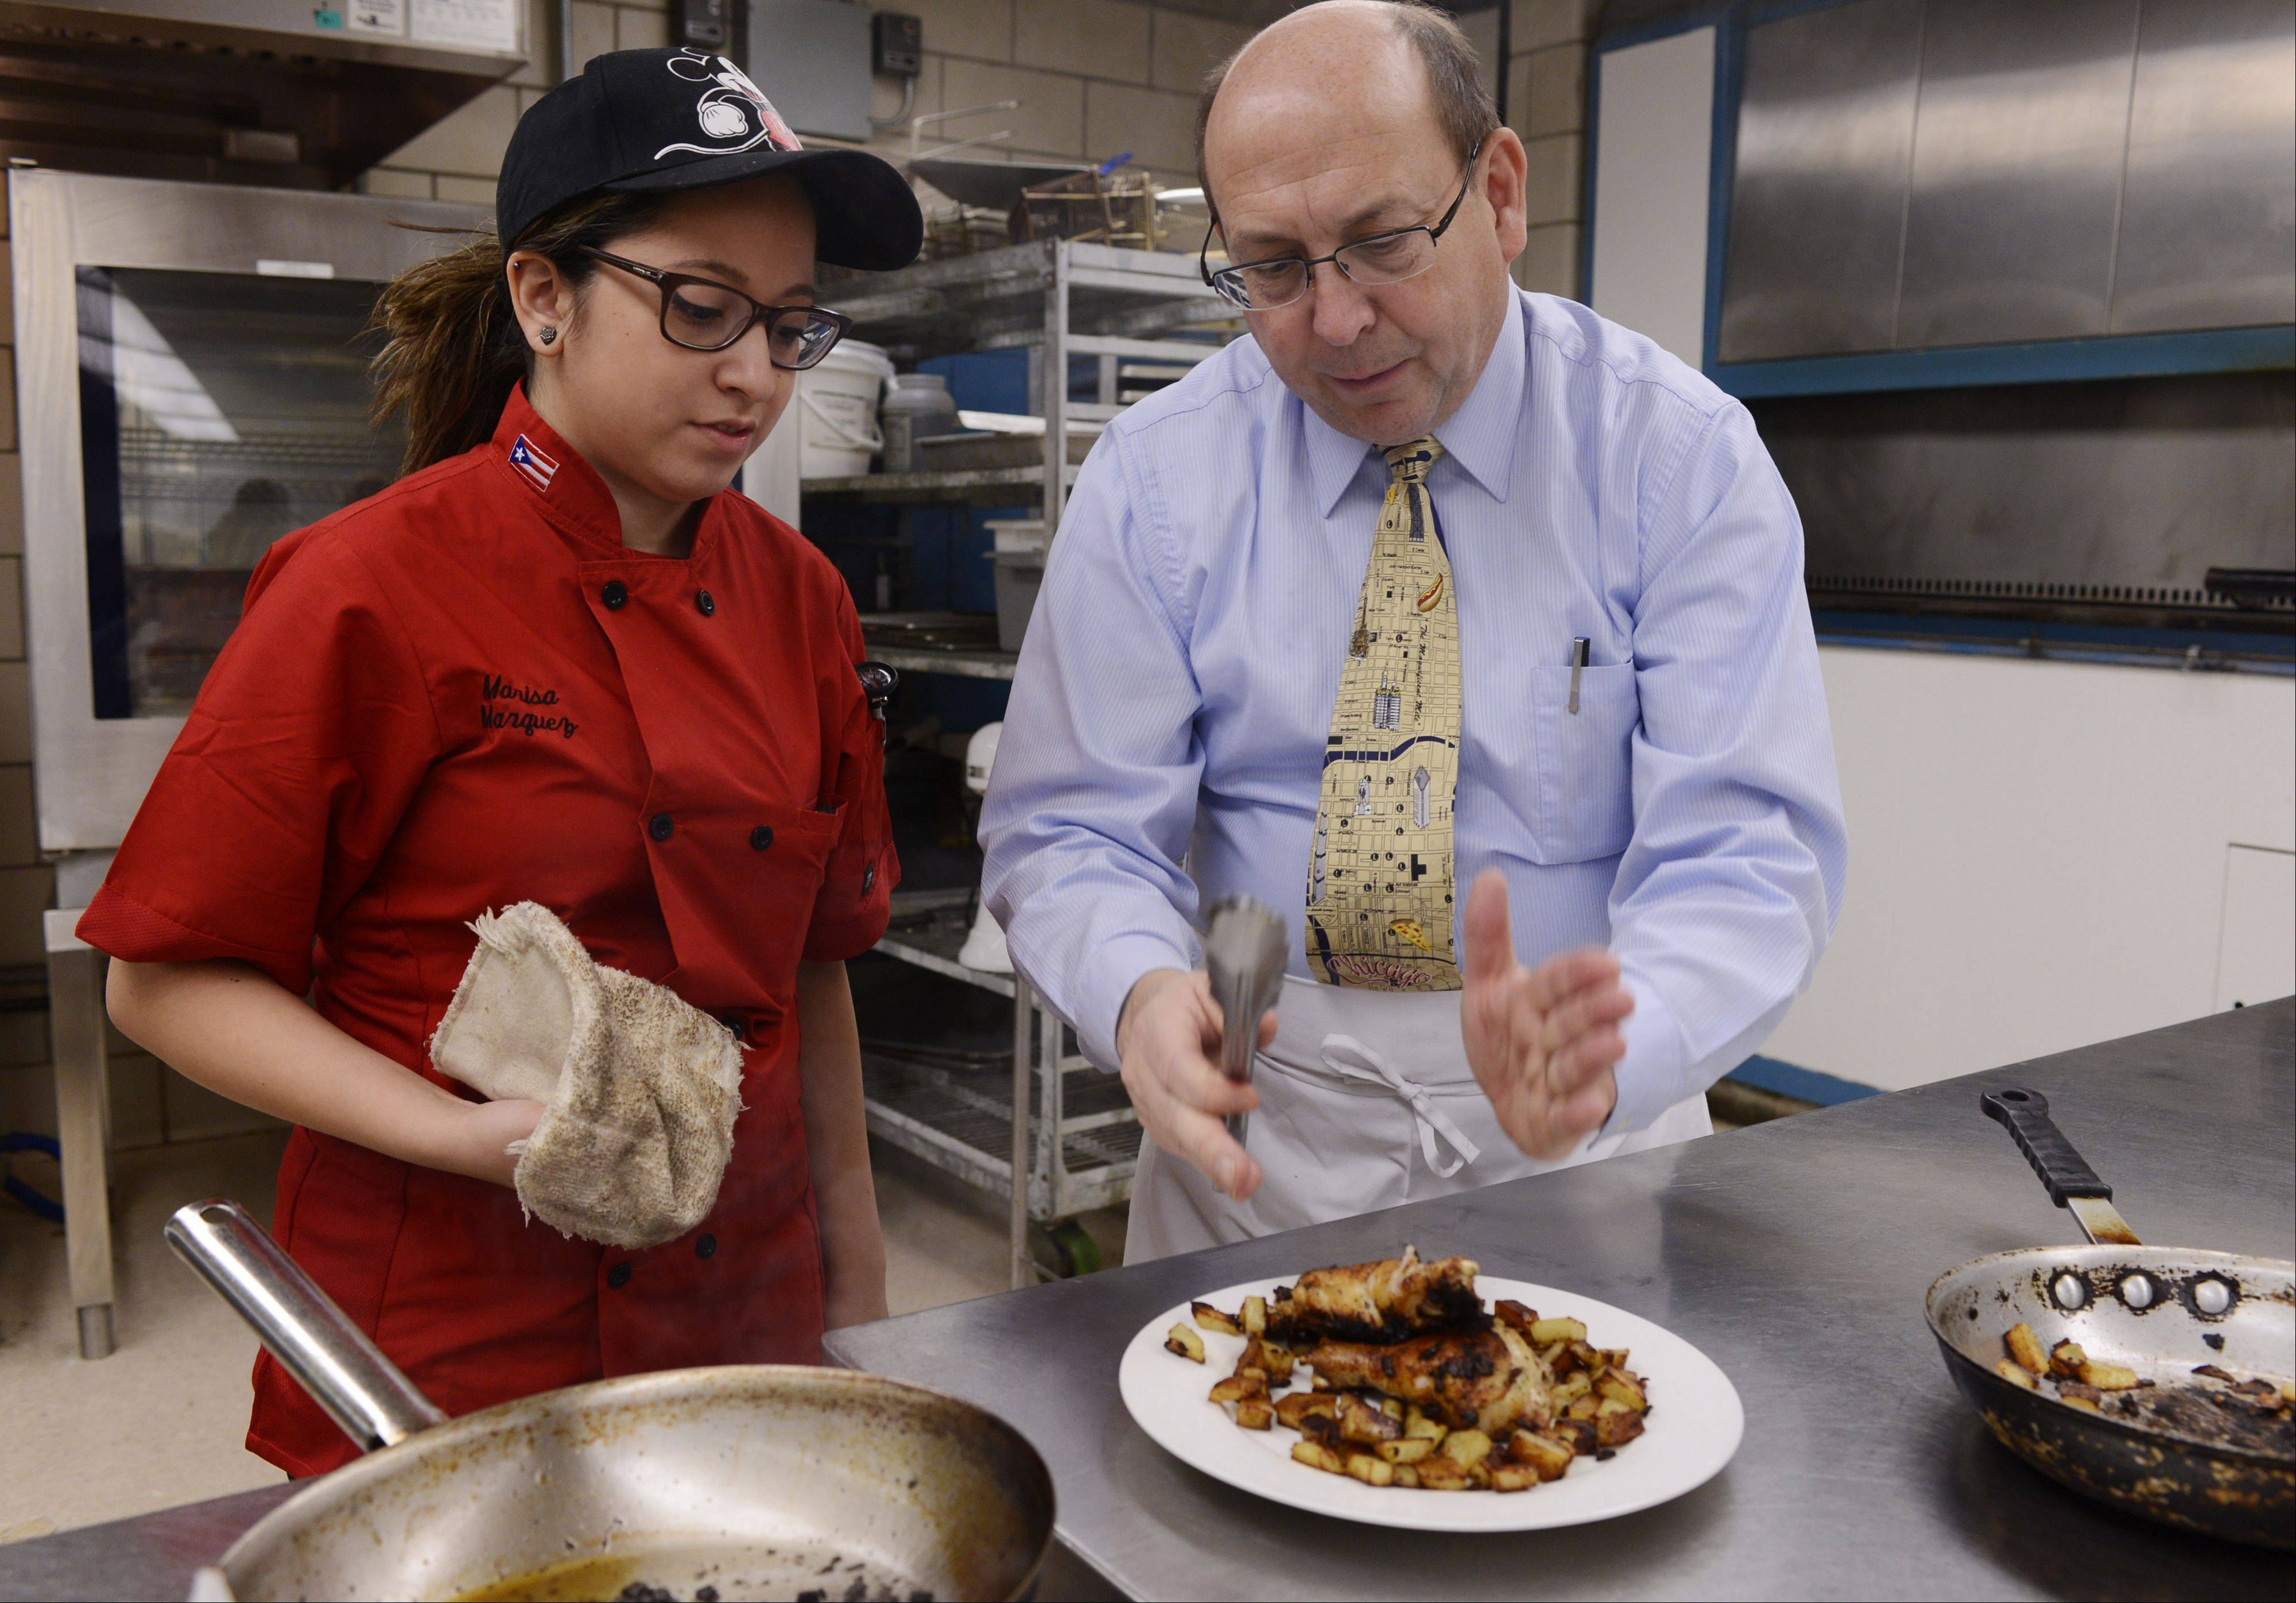 Marquez listens as Patrick Beach, head of the Hospitality Management program at Harper College, suggests a way to plate a dish in the school's kitchen.